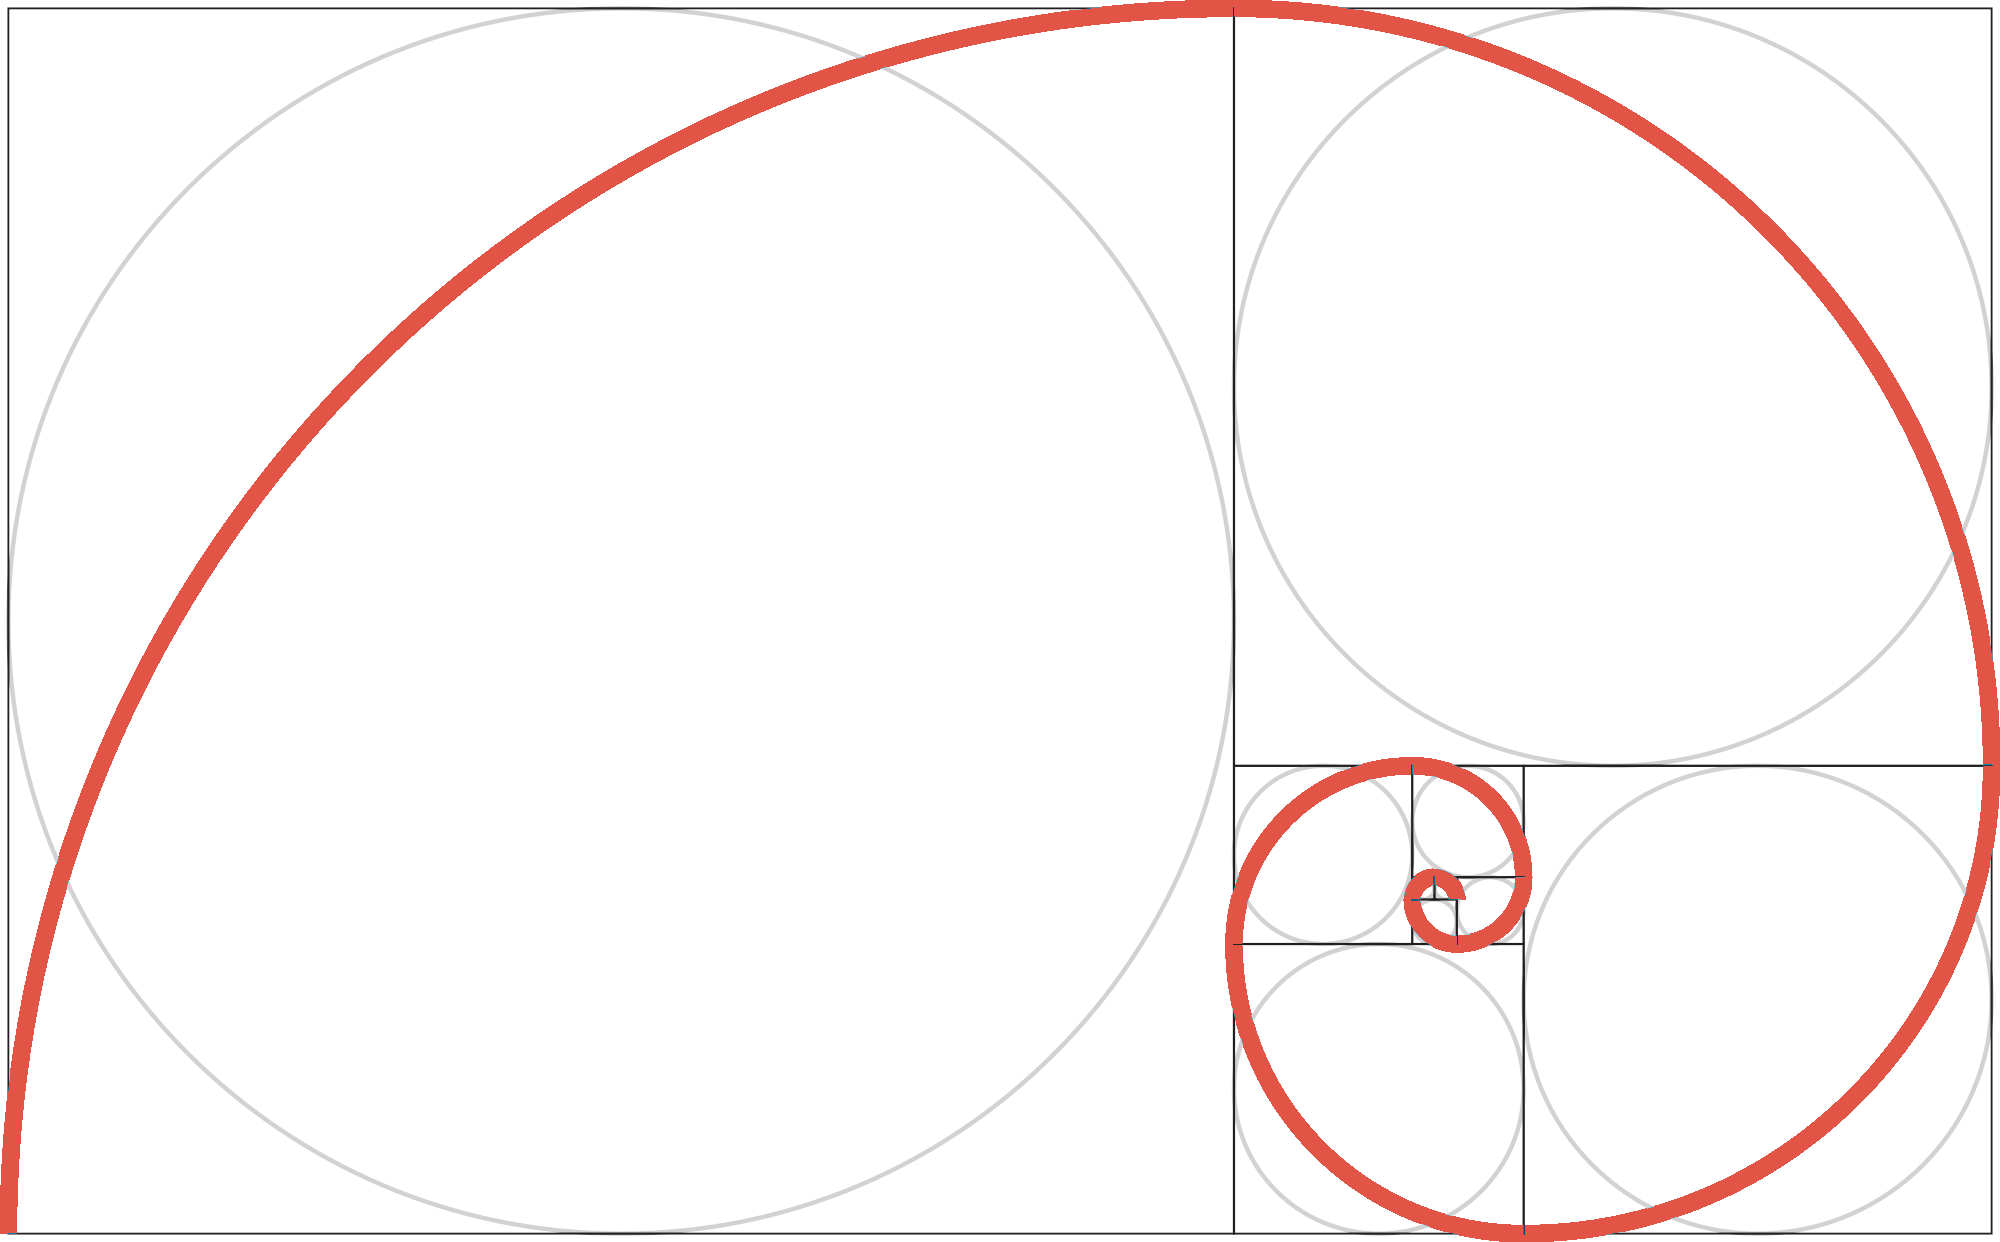 Fibonacci spiral that is formed when forming squares with the widths of each term in the Fibonacci sequence